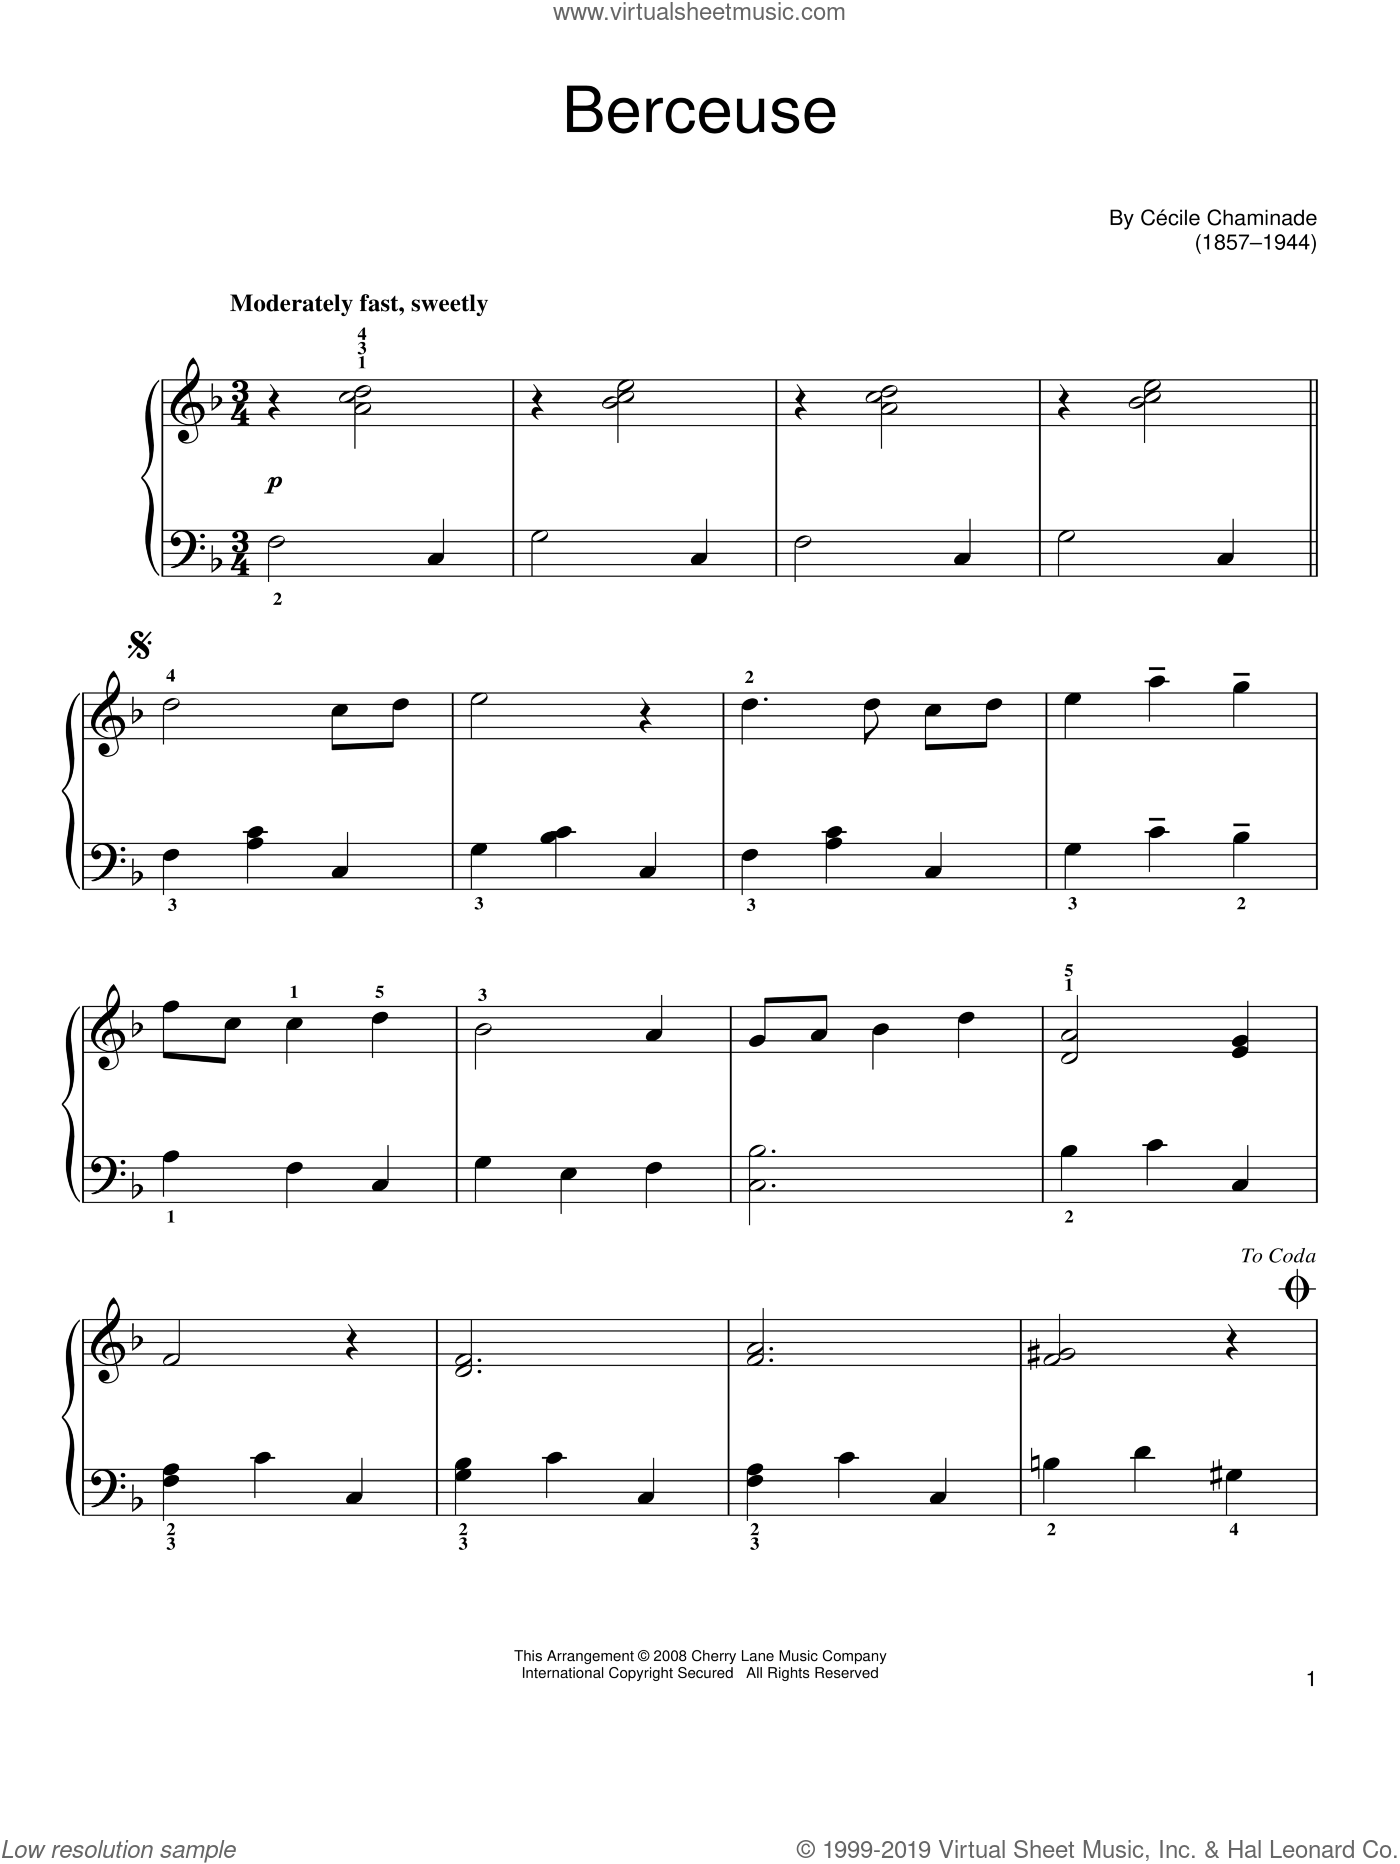 Berceuse sheet music for piano solo by Cecile Chaminade, classical score, easy skill level